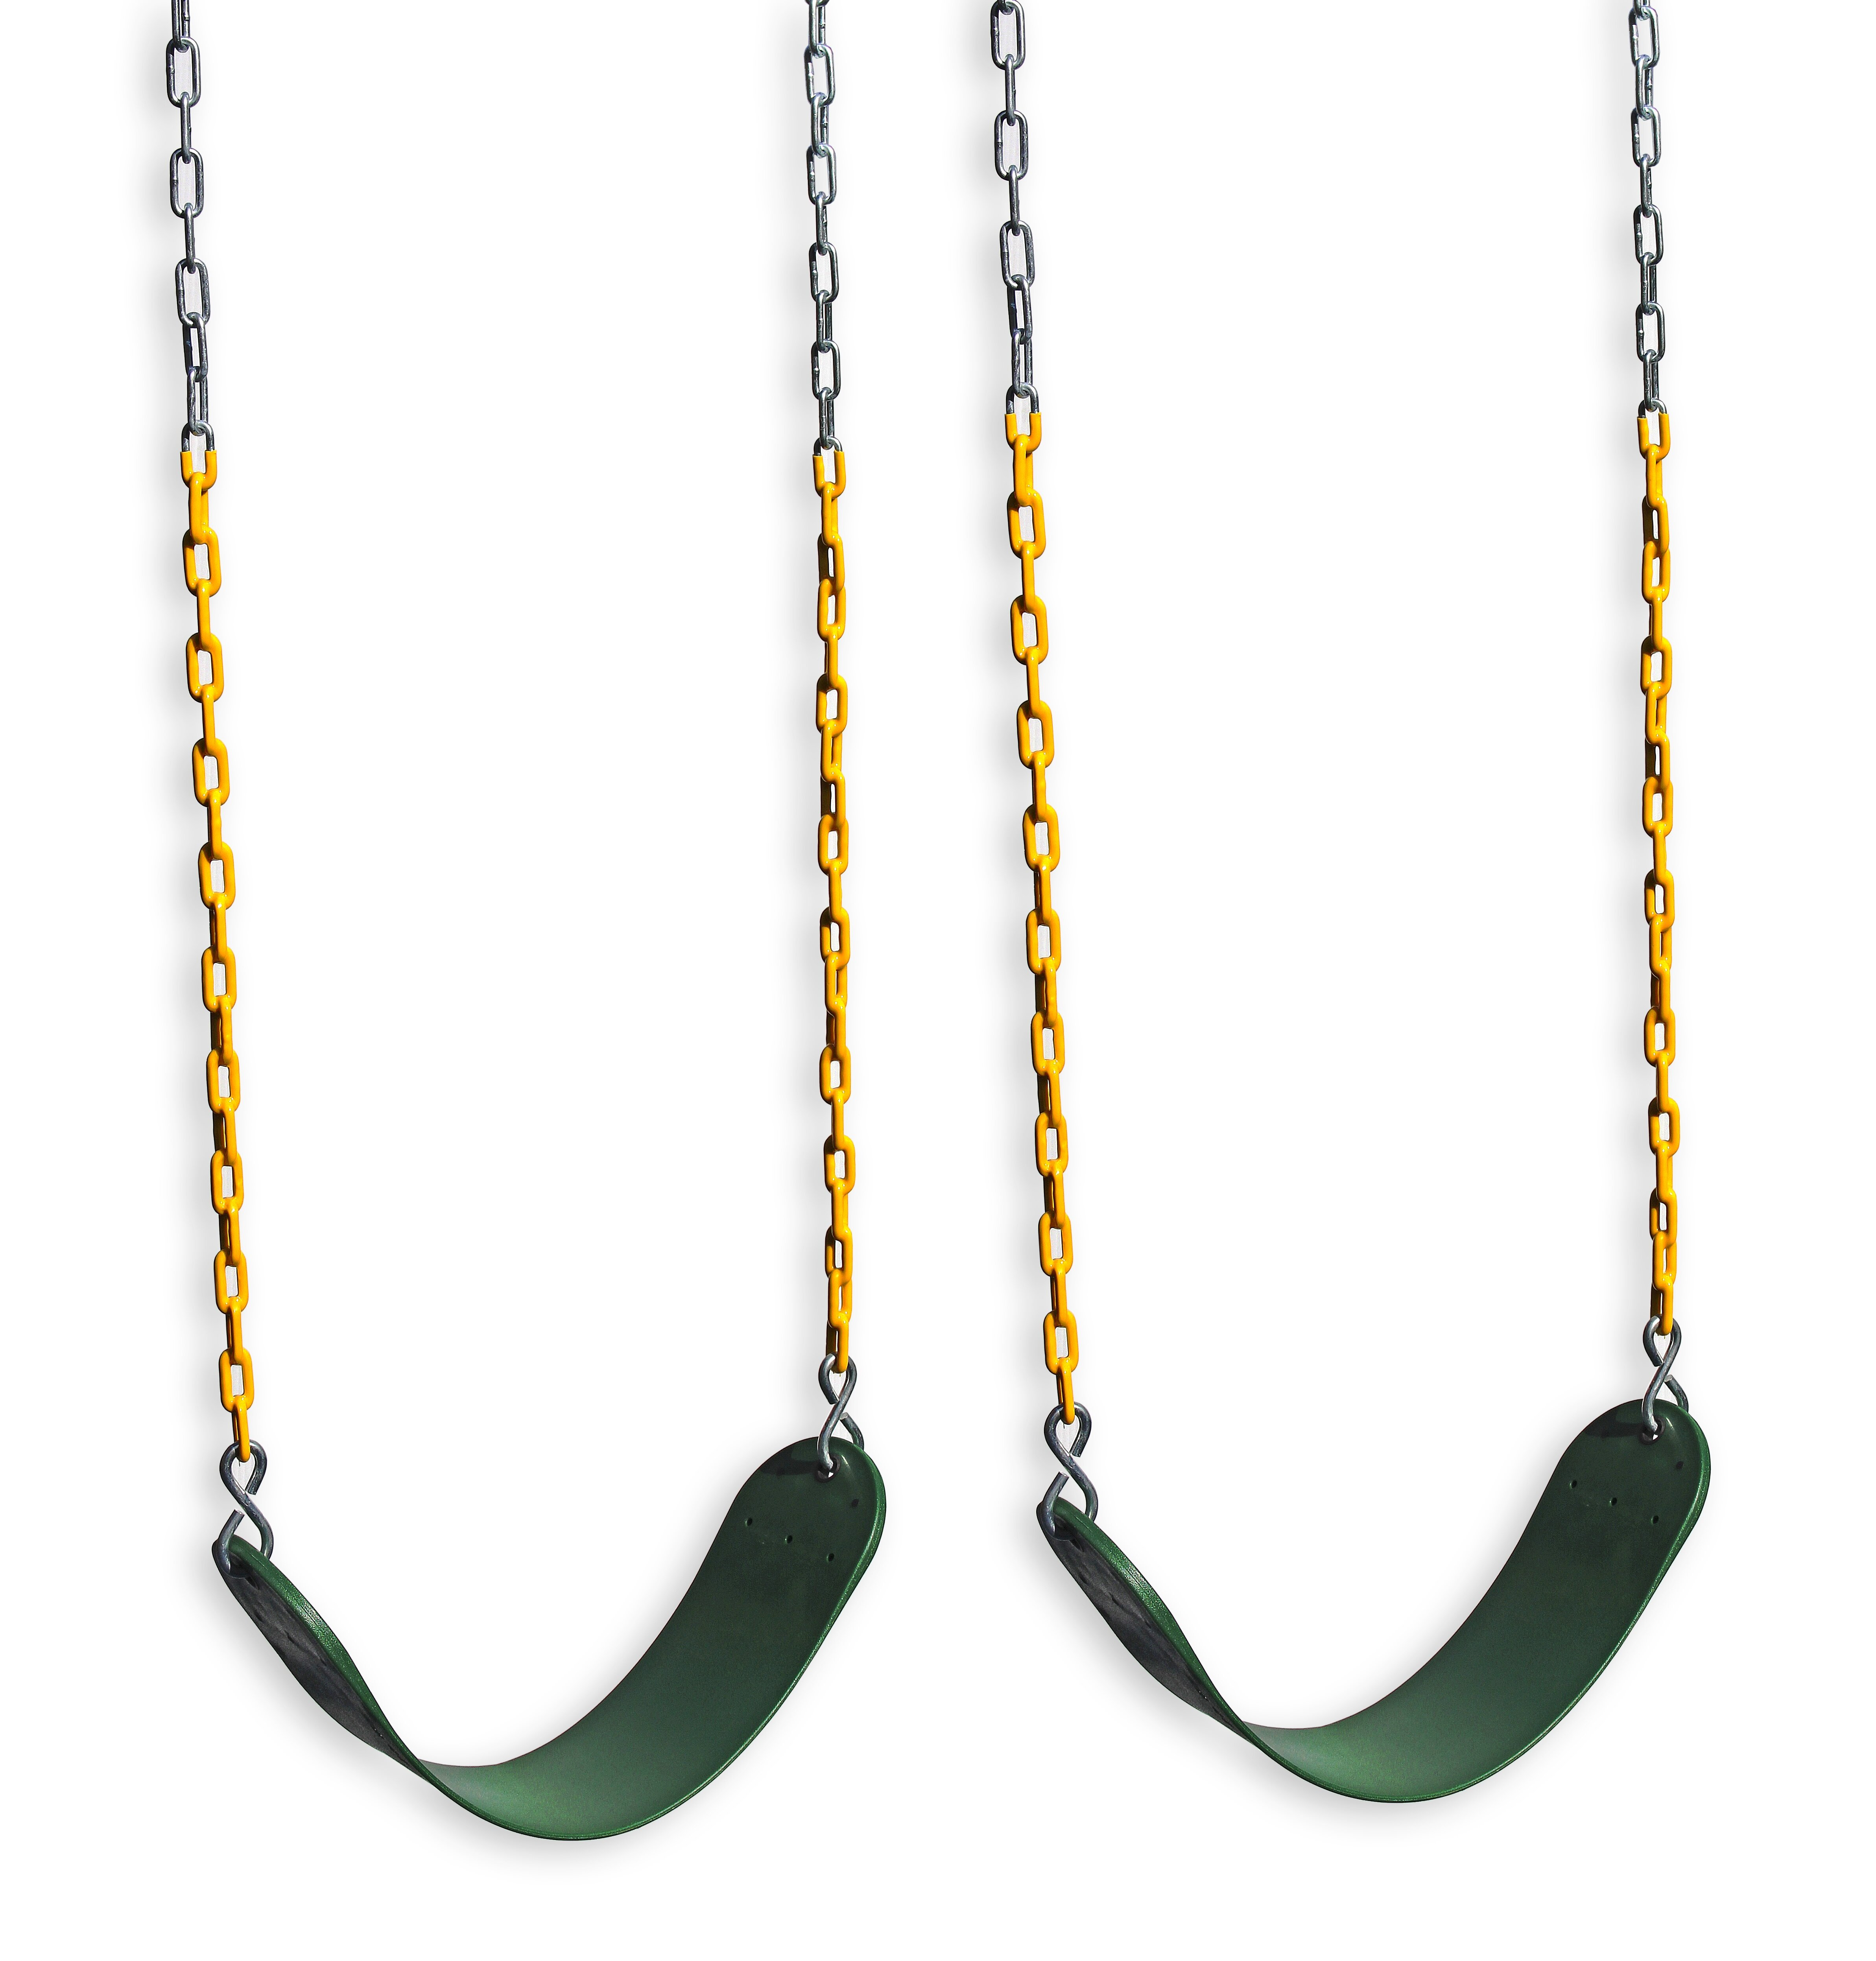 Eastern Jungle Gym 2 Outdoor Swing Seats For Playset Replacement